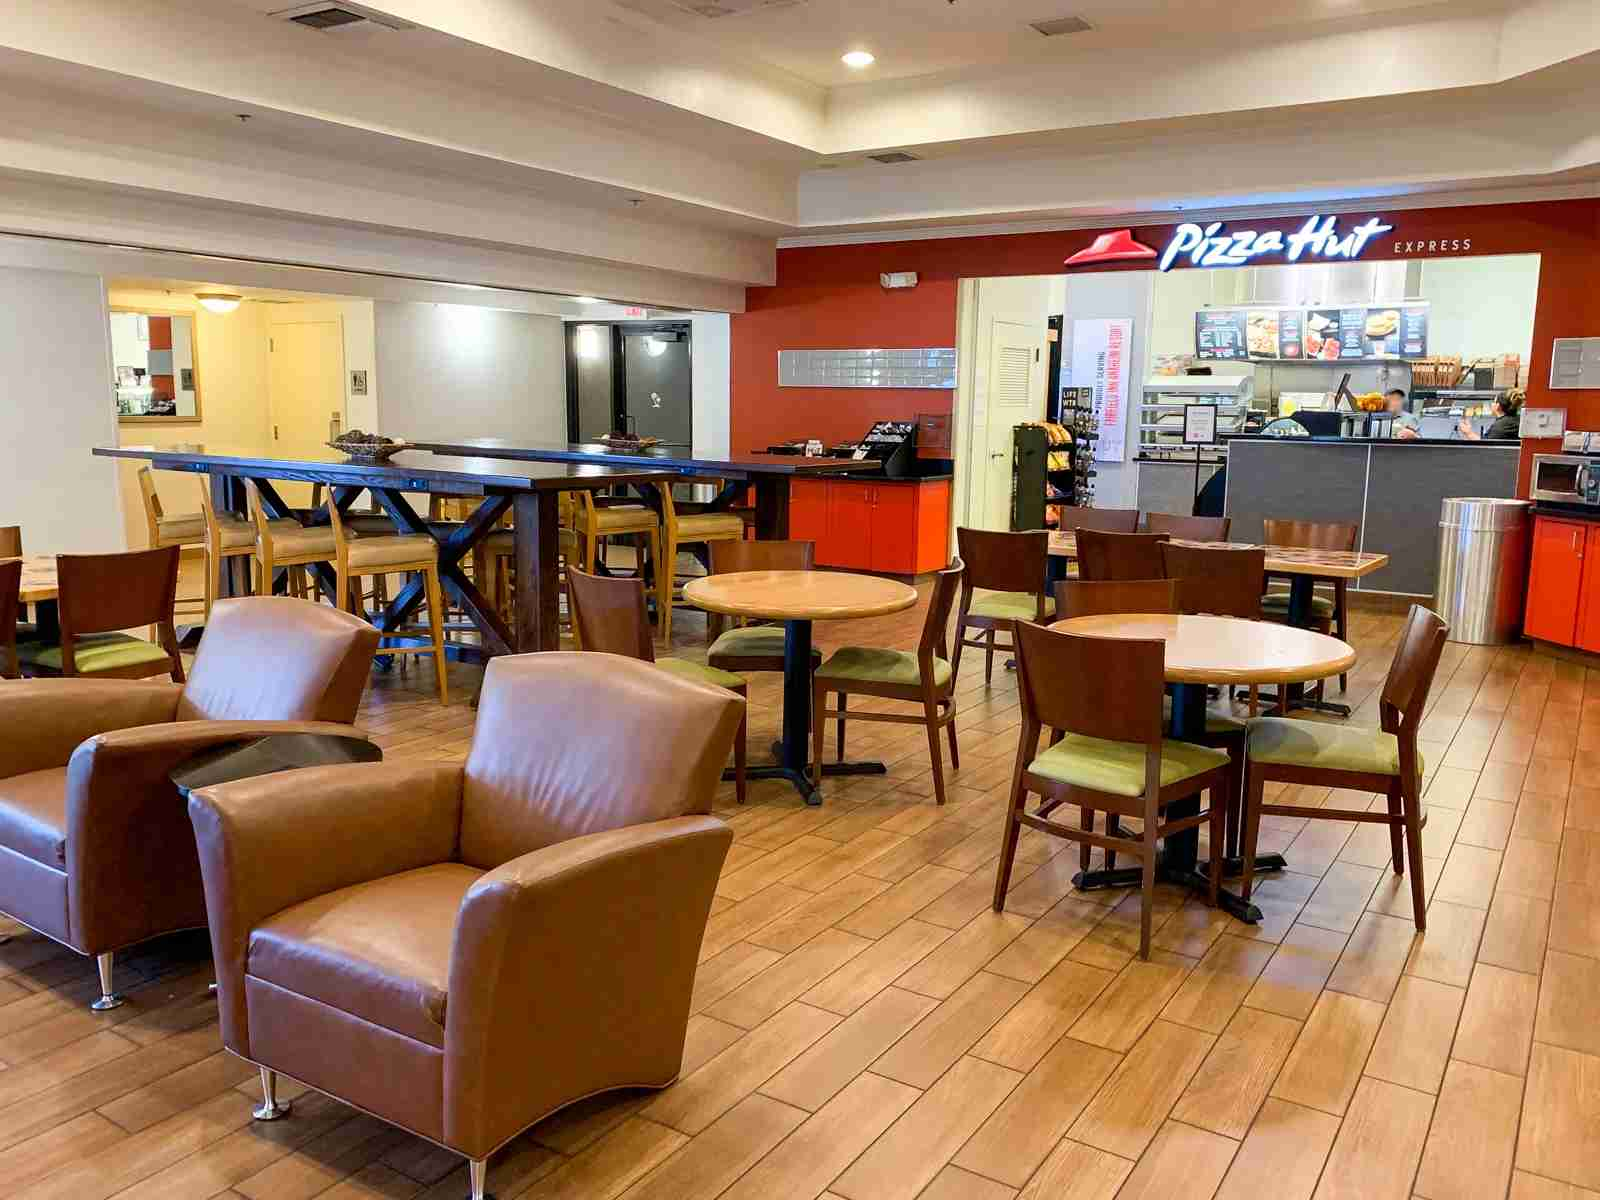 Fairfield Anaheim Disneyland Pizza Hut